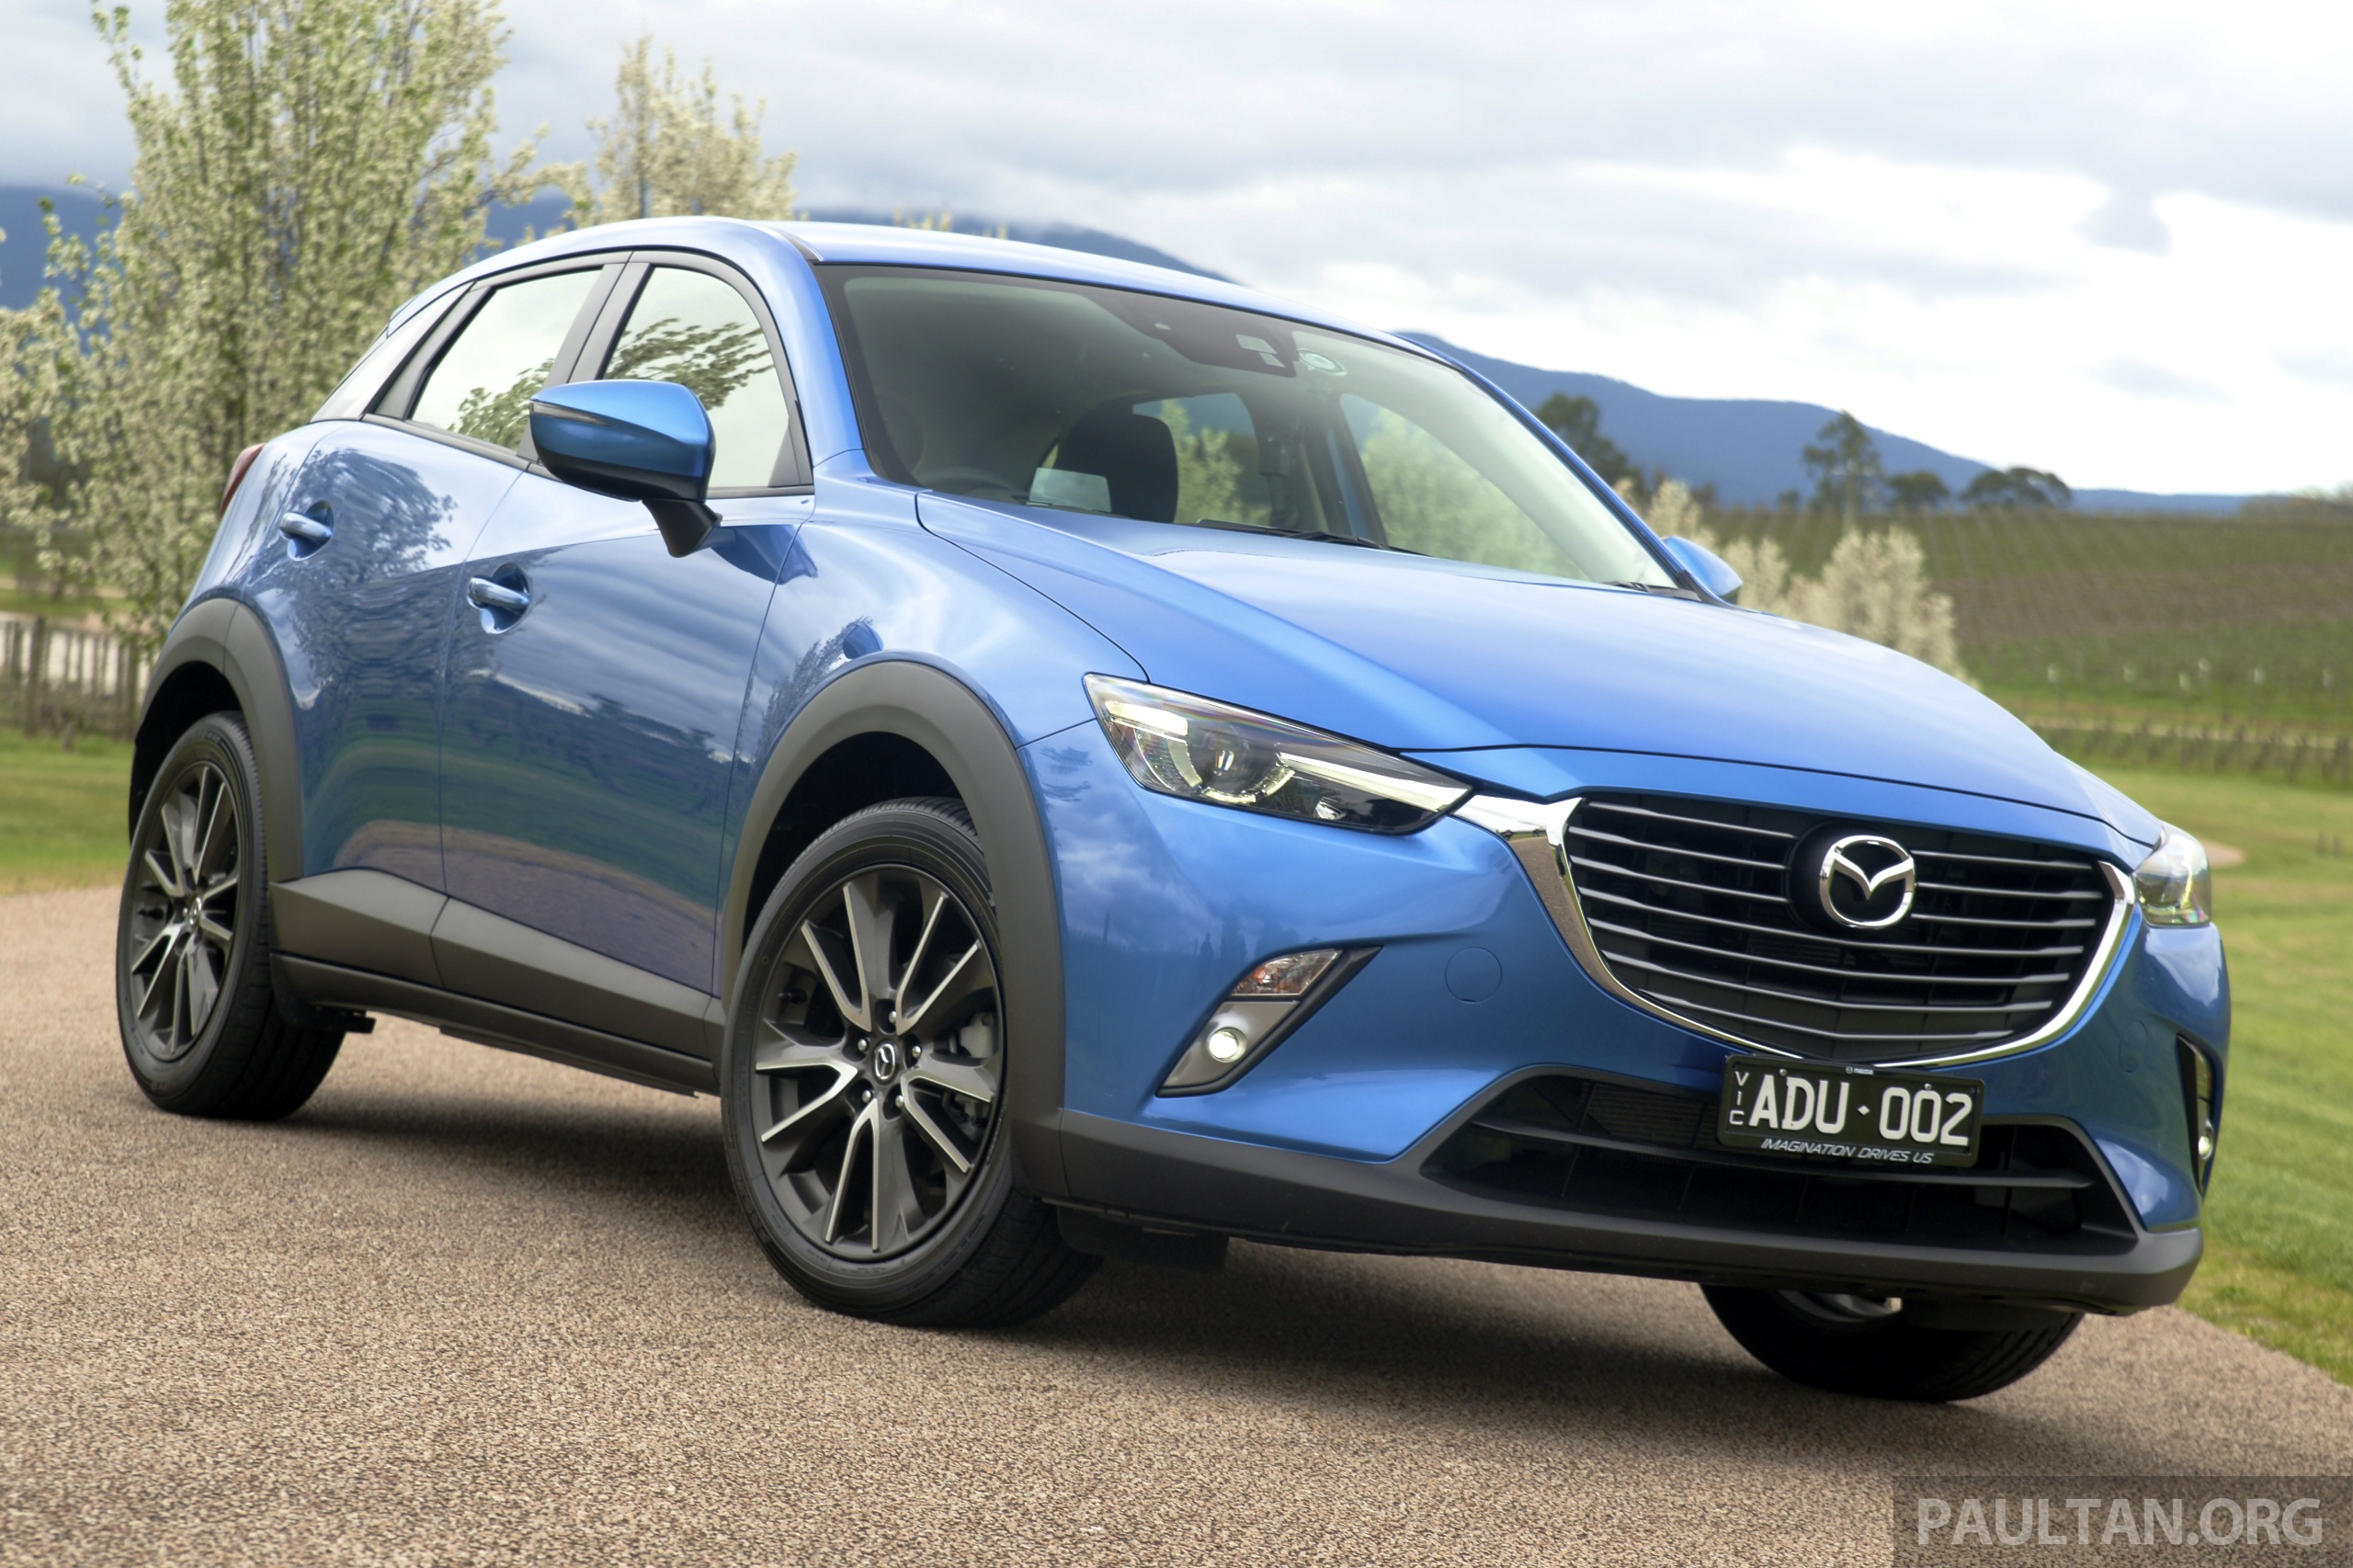 mazda cx 3 goes on sale in thailand from rm102k. Black Bedroom Furniture Sets. Home Design Ideas